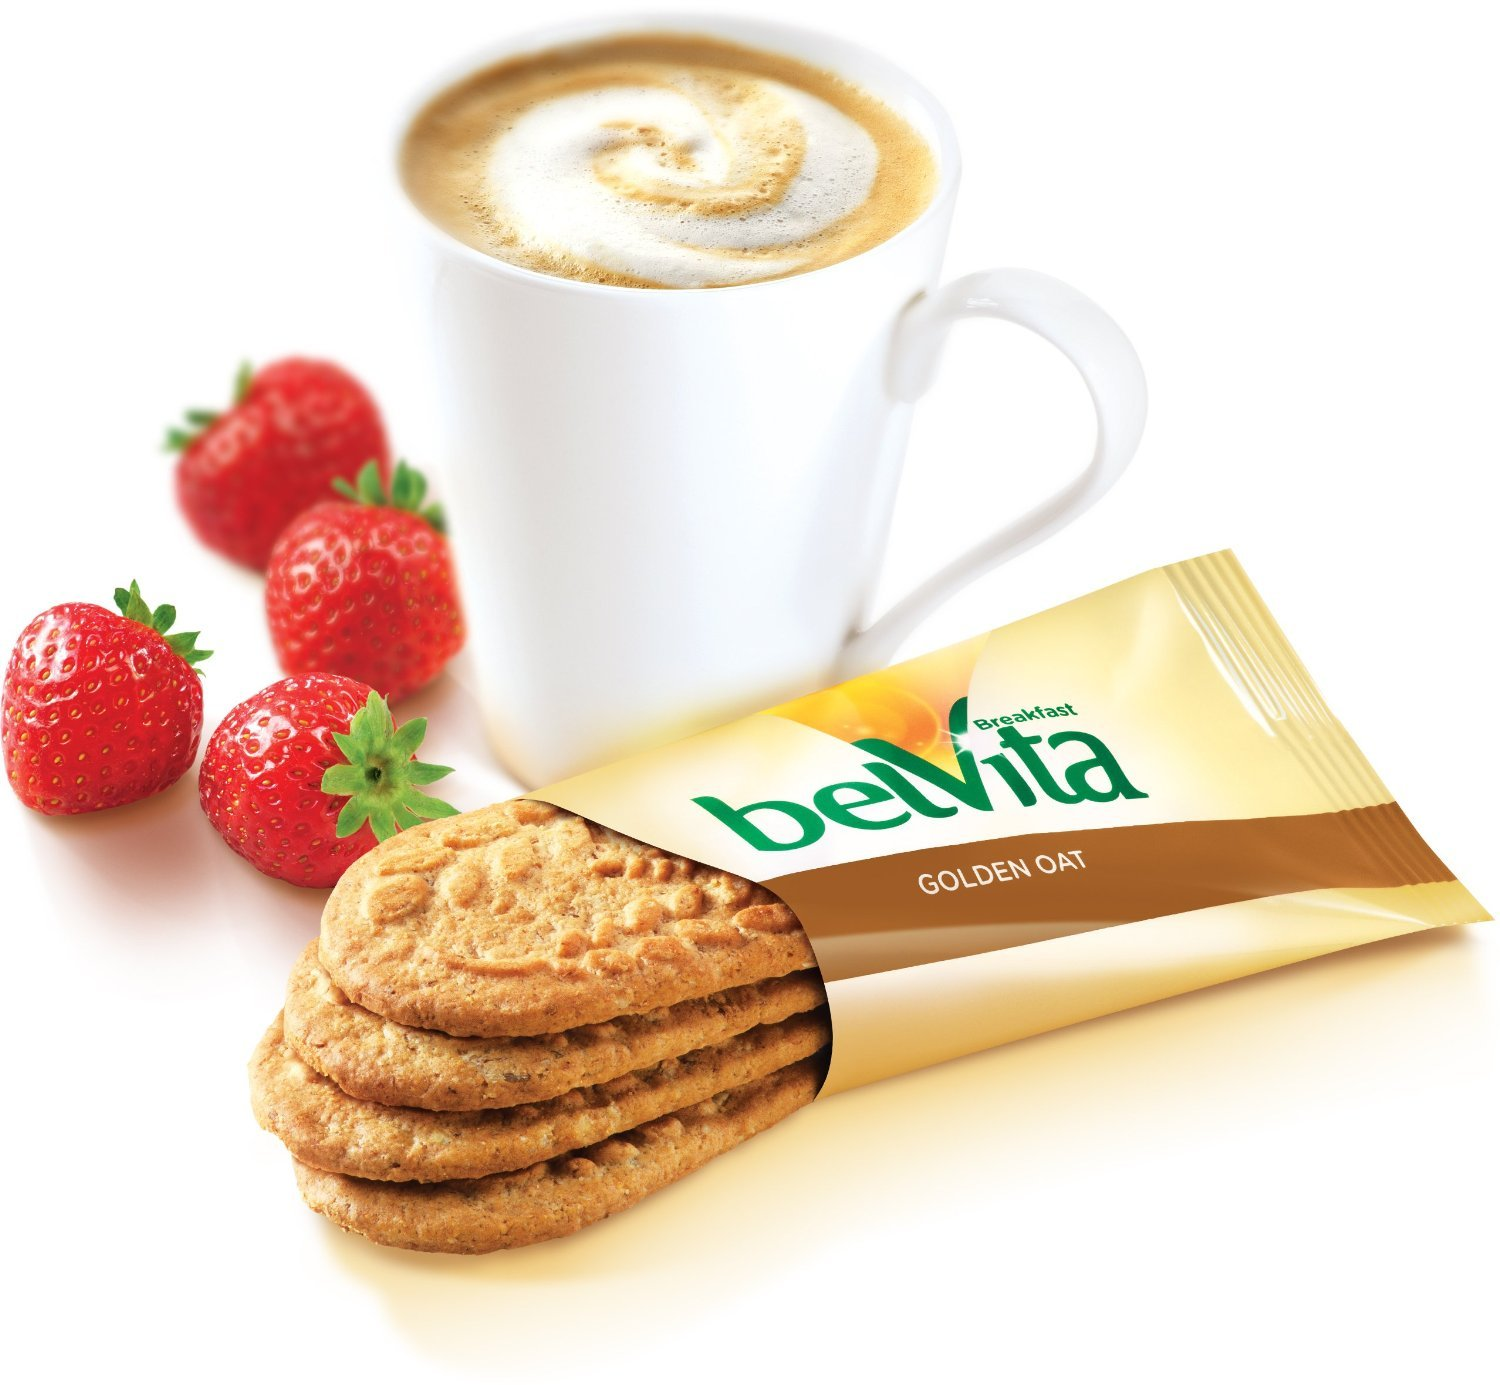 belVita Breakfast Biscuits Variety Pack, 5 Count Box, 8.8 Ounce (Pack of 6) by Belvita (Image #5)